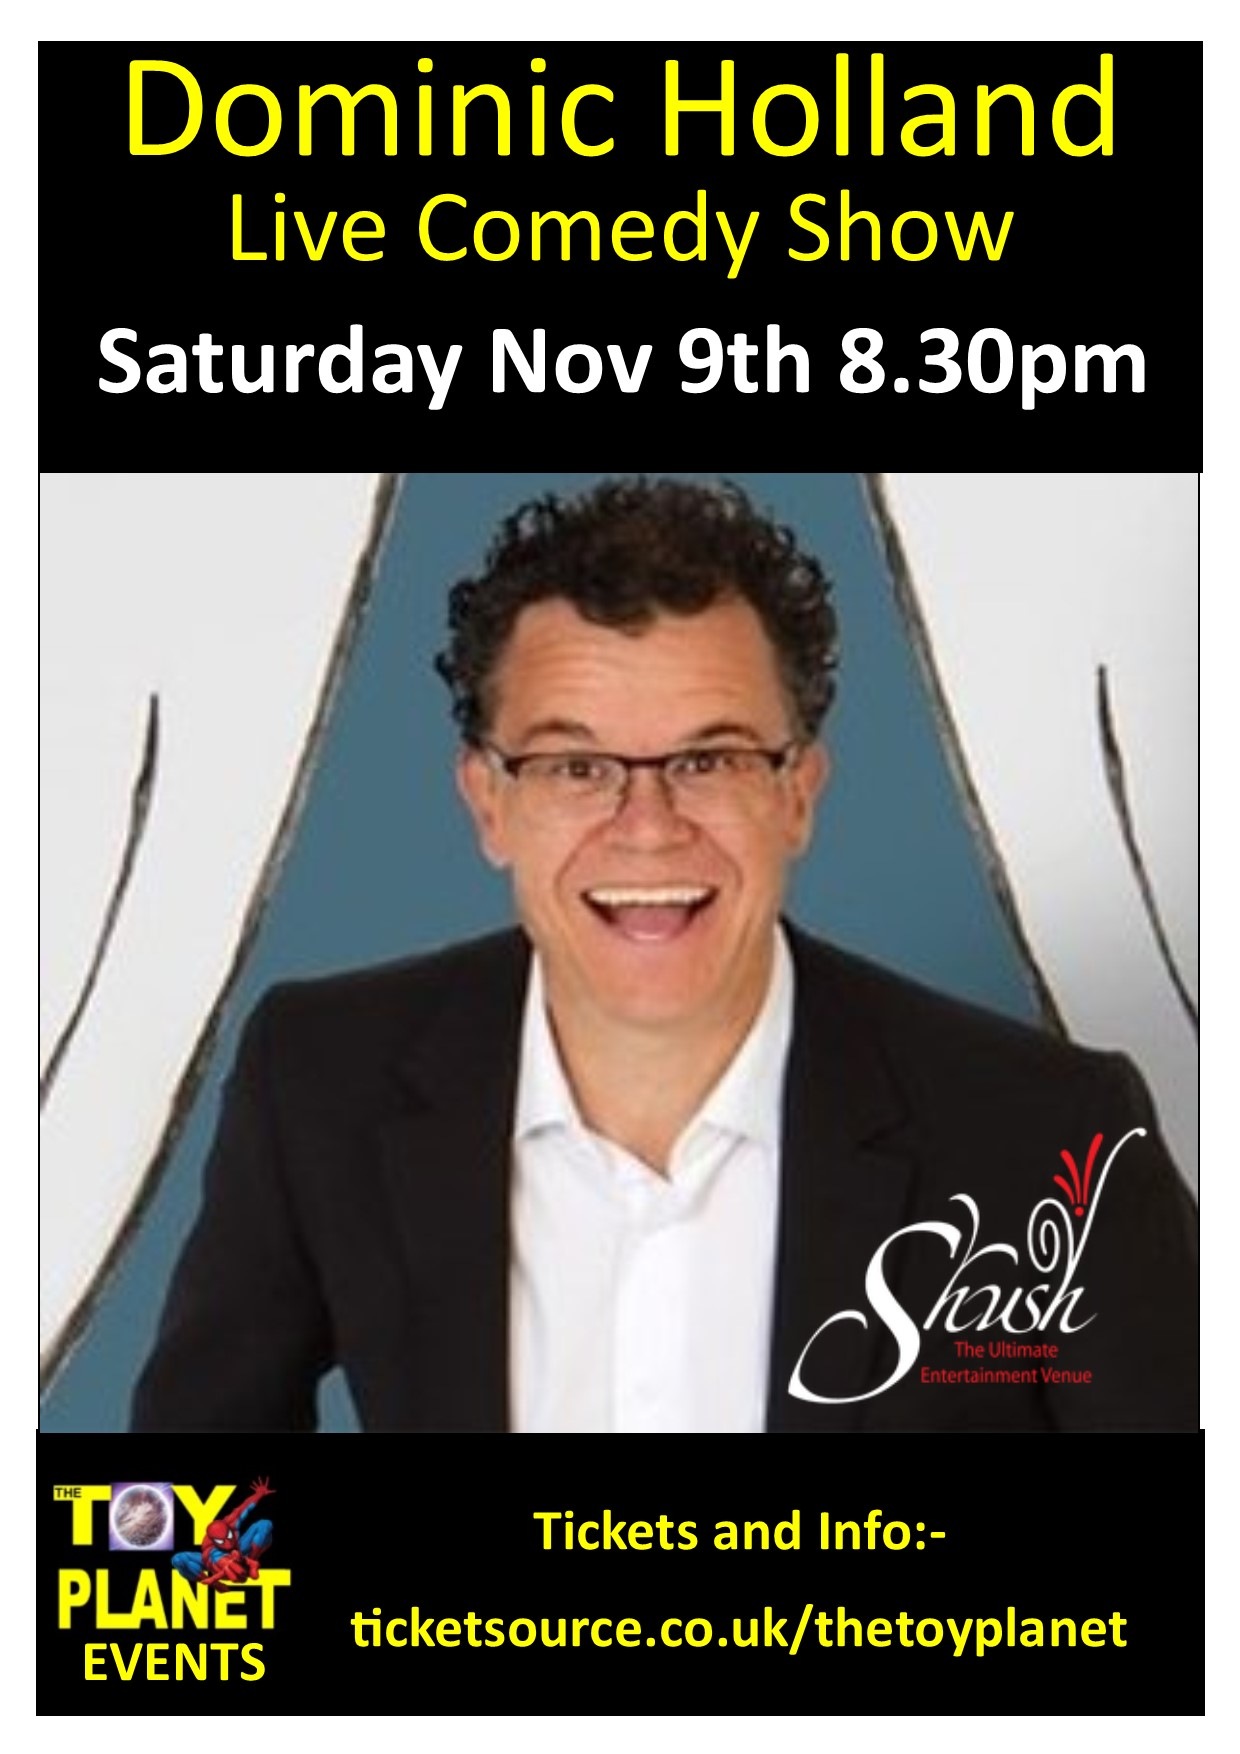 Dominic Holland Live Comedy Show banner image